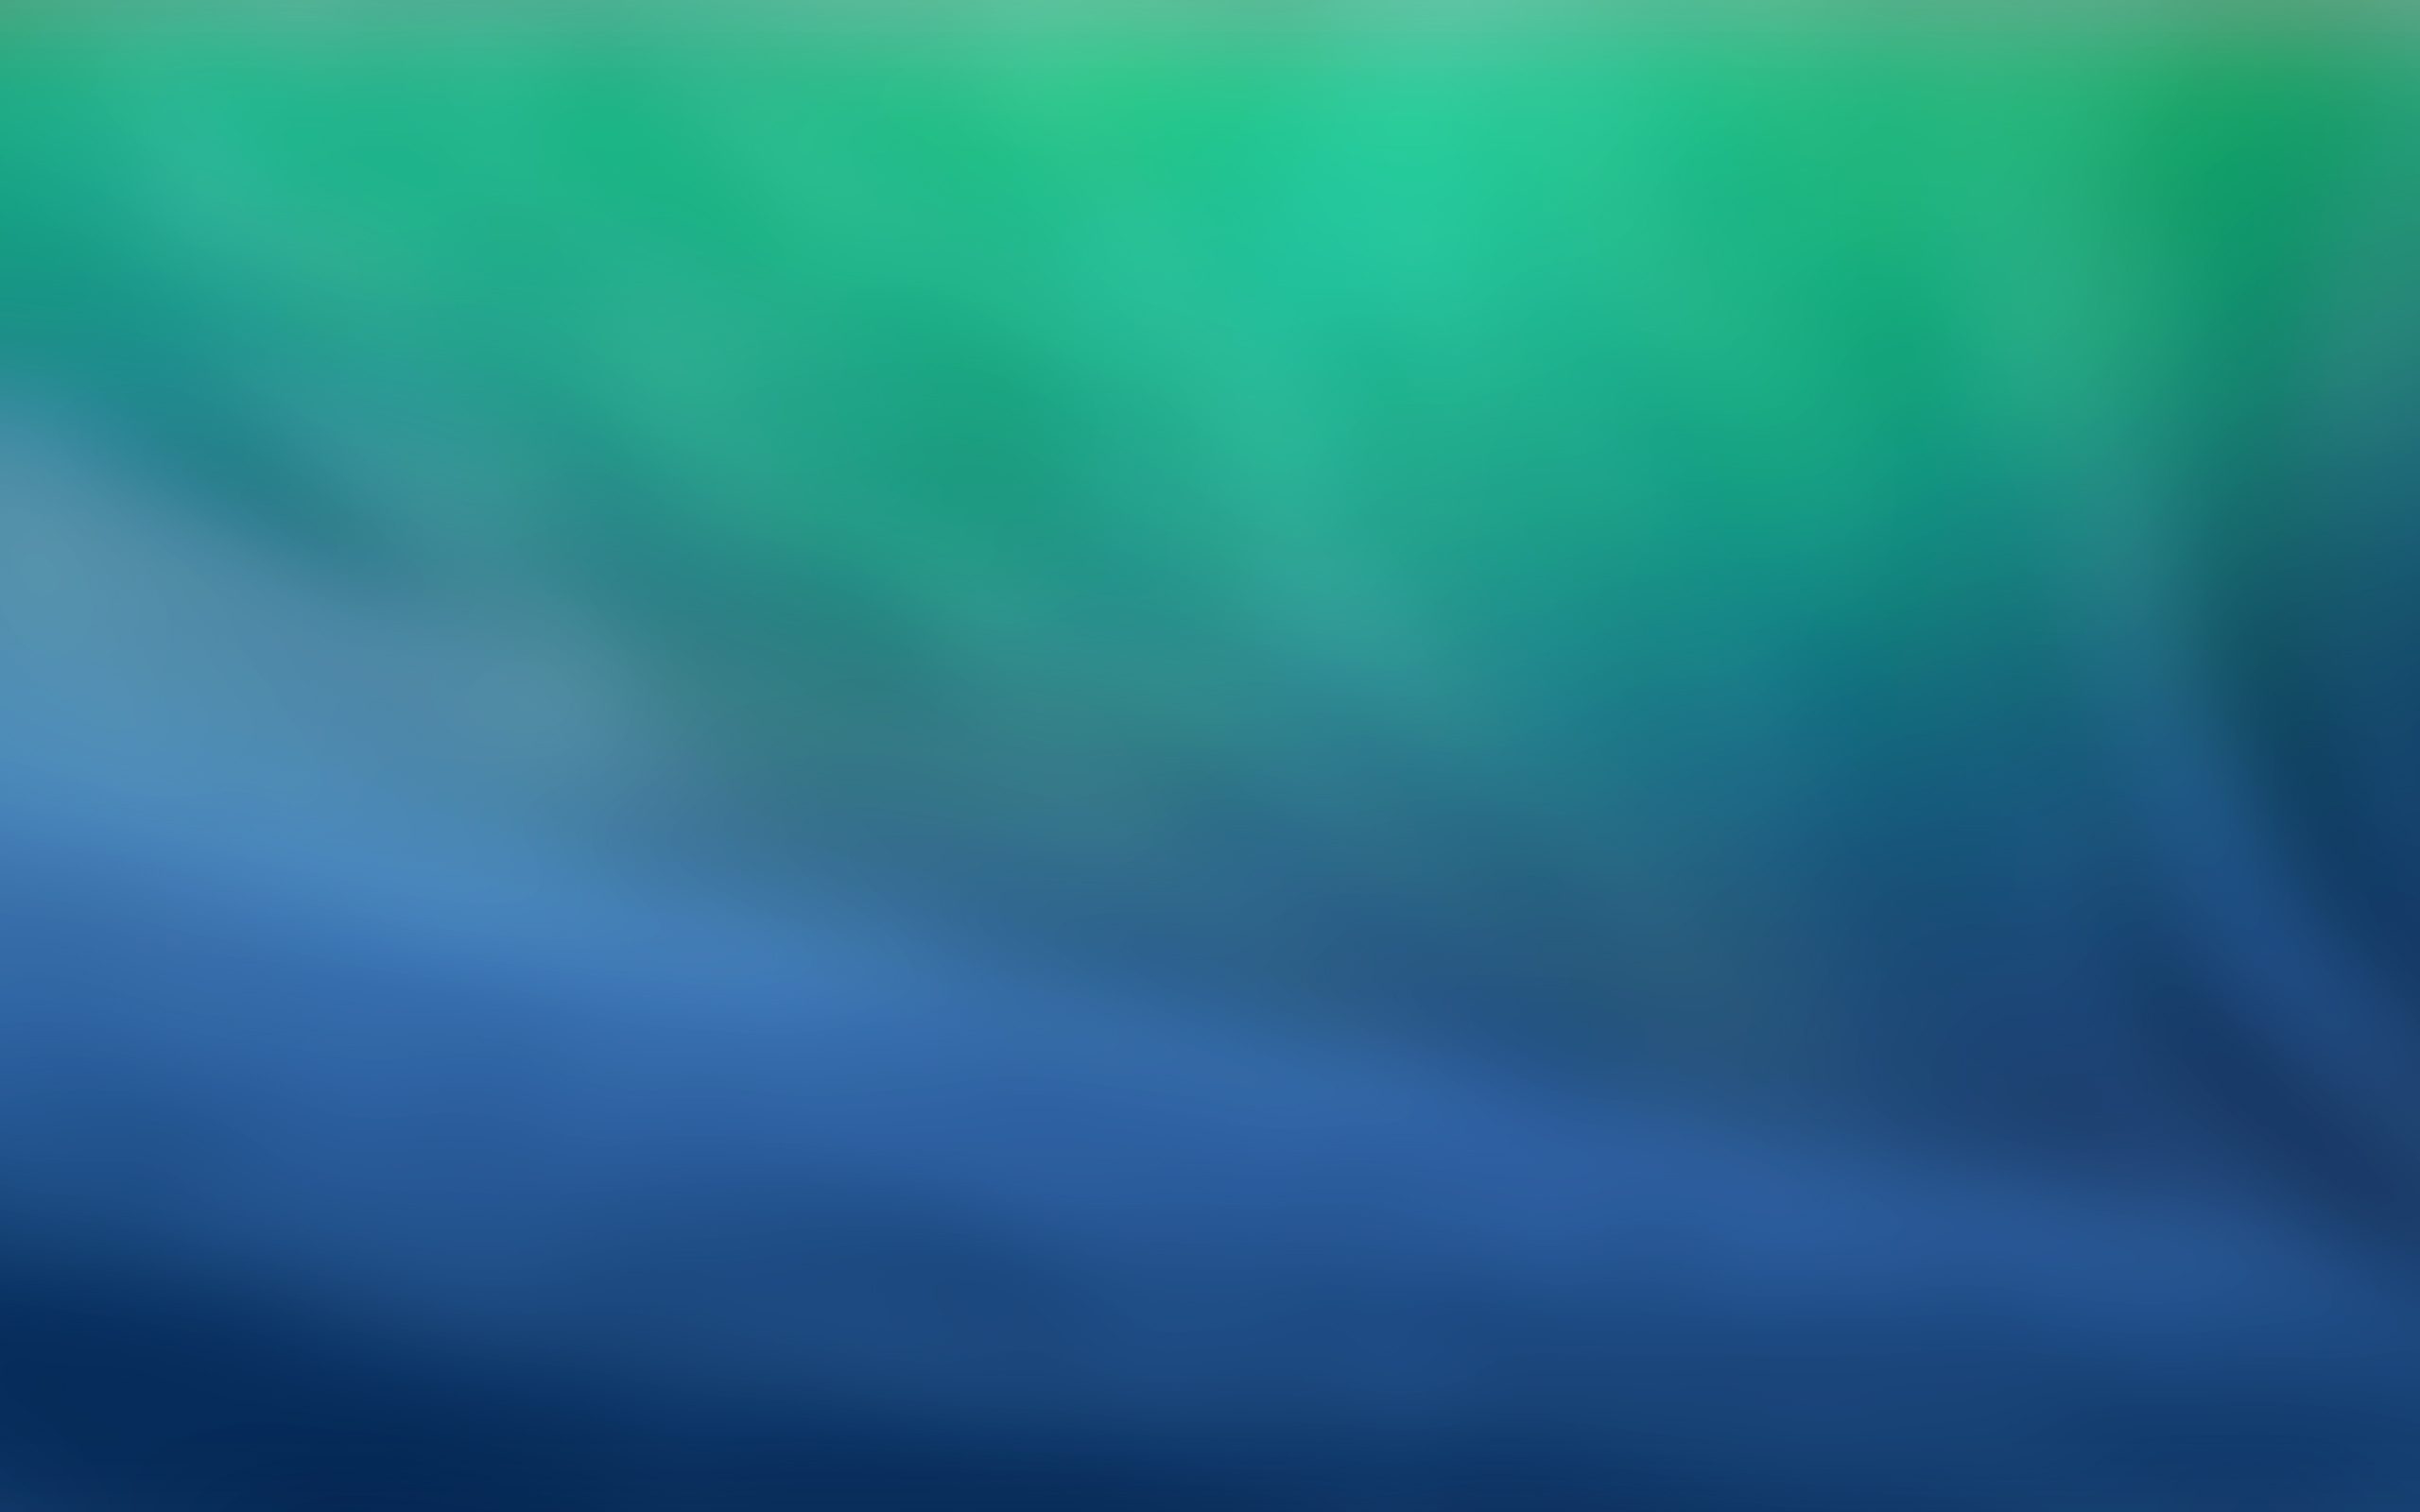 Mac Os Wallpaper Hd Download Picalls Com Mavericks Smooth By Bensow By Bensow